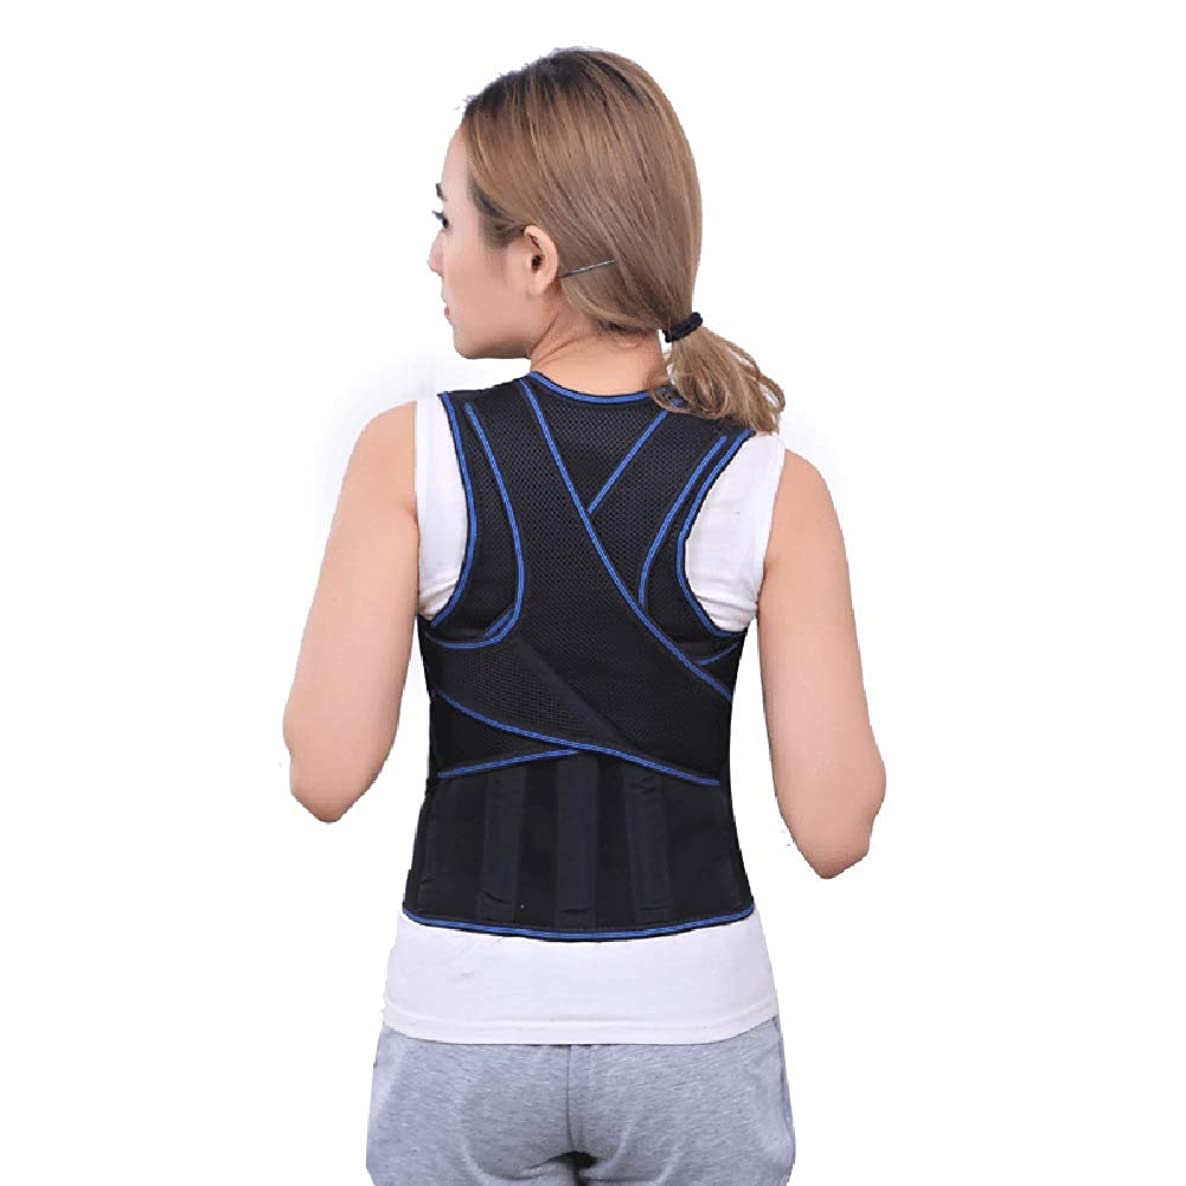 XJBHD Back Posture Brace Corrector, Adjustable Shoulder Lumbar Waist Support Belt for Women, Improve Posture, Prevent Slouching, Pain Relief